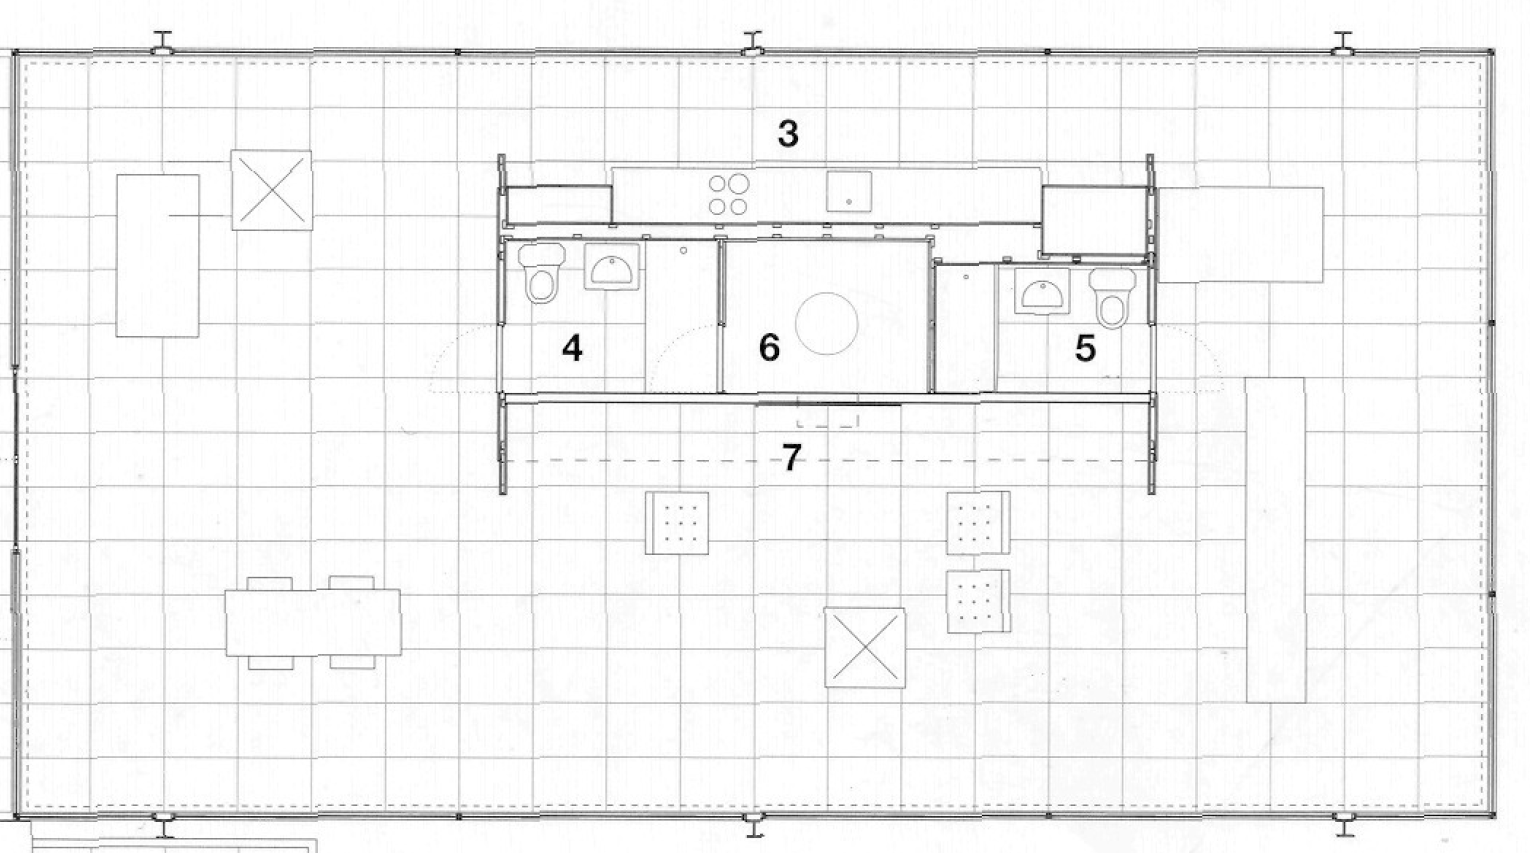 mies van der rohe floor plans google search floor plans pinterest farnsworth house. Black Bedroom Furniture Sets. Home Design Ideas